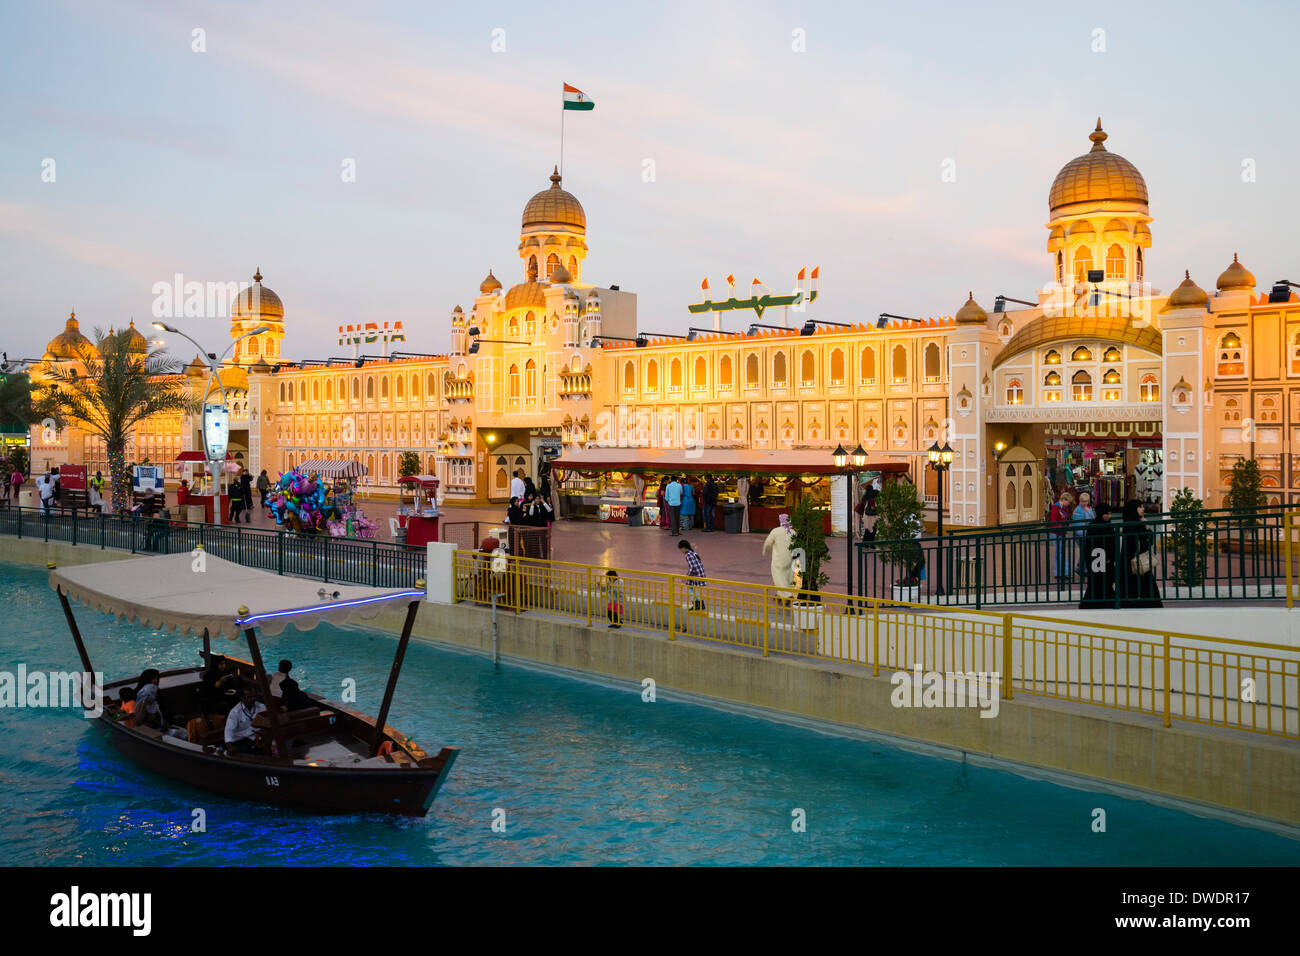 India Pavilion and canal with abra tour boat at Global Village tourist cultural attraction in Dubai United Arab Emirates - Stock Image